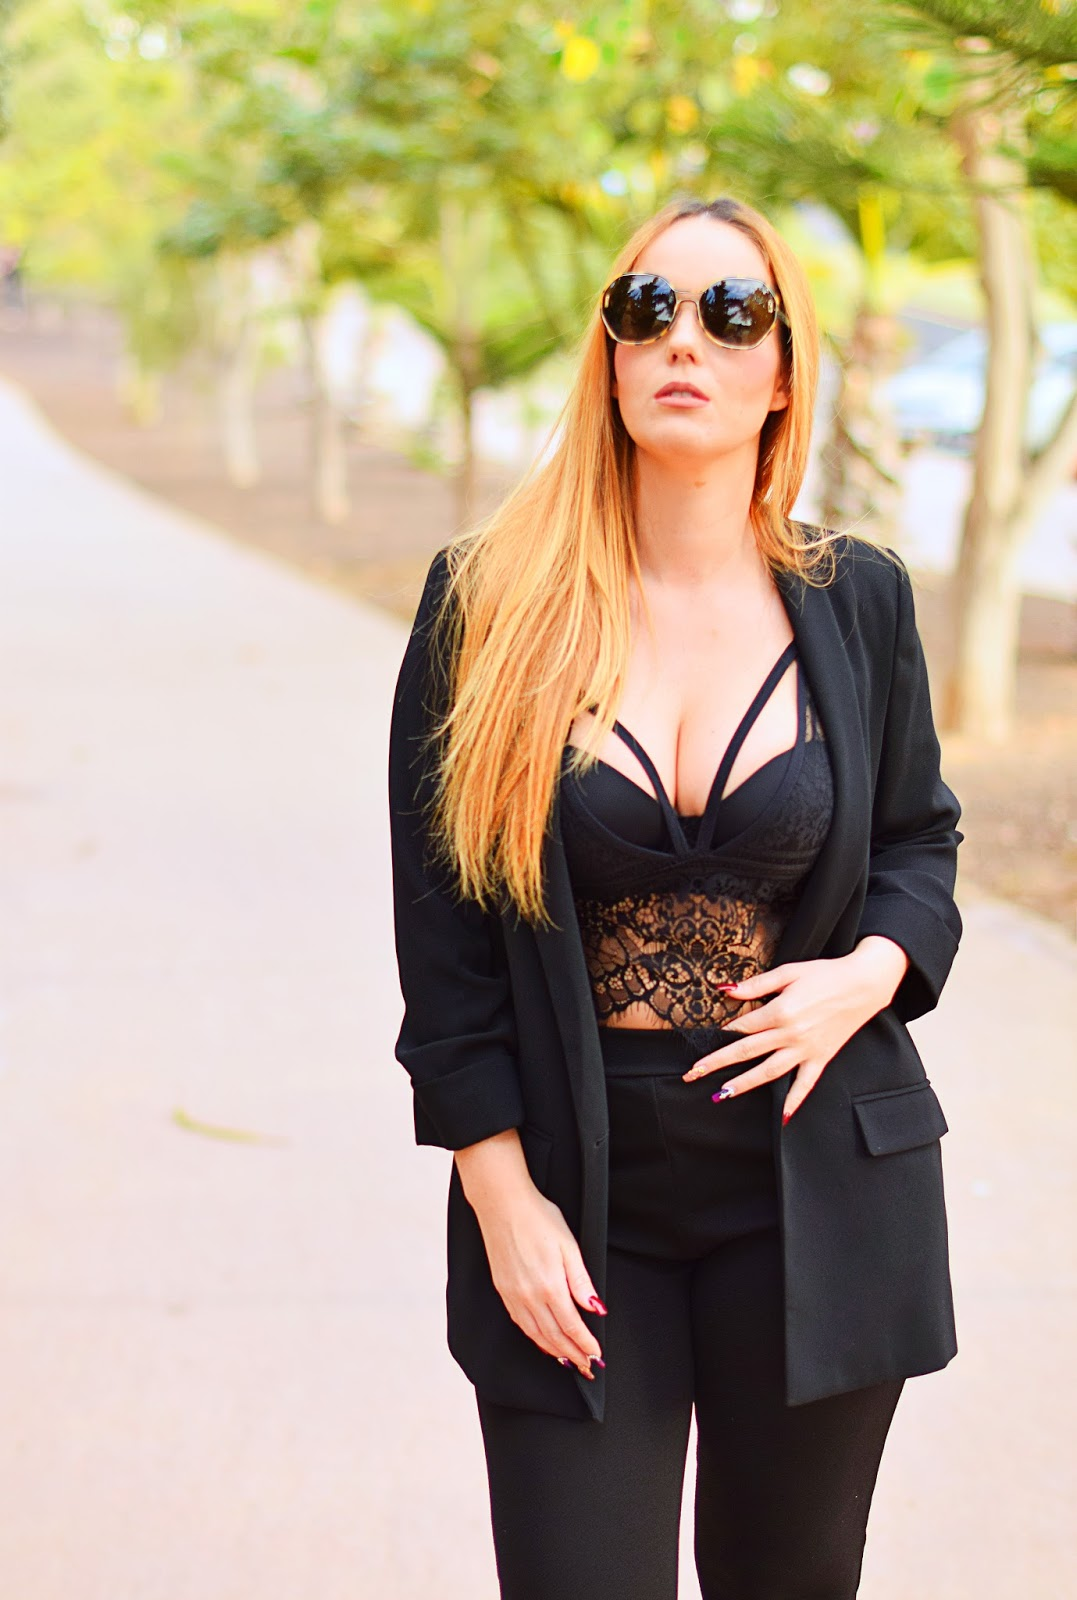 Blazer, blanco lace bra, opticalh, print leopard, carolina boix, lace up shoes, total black look